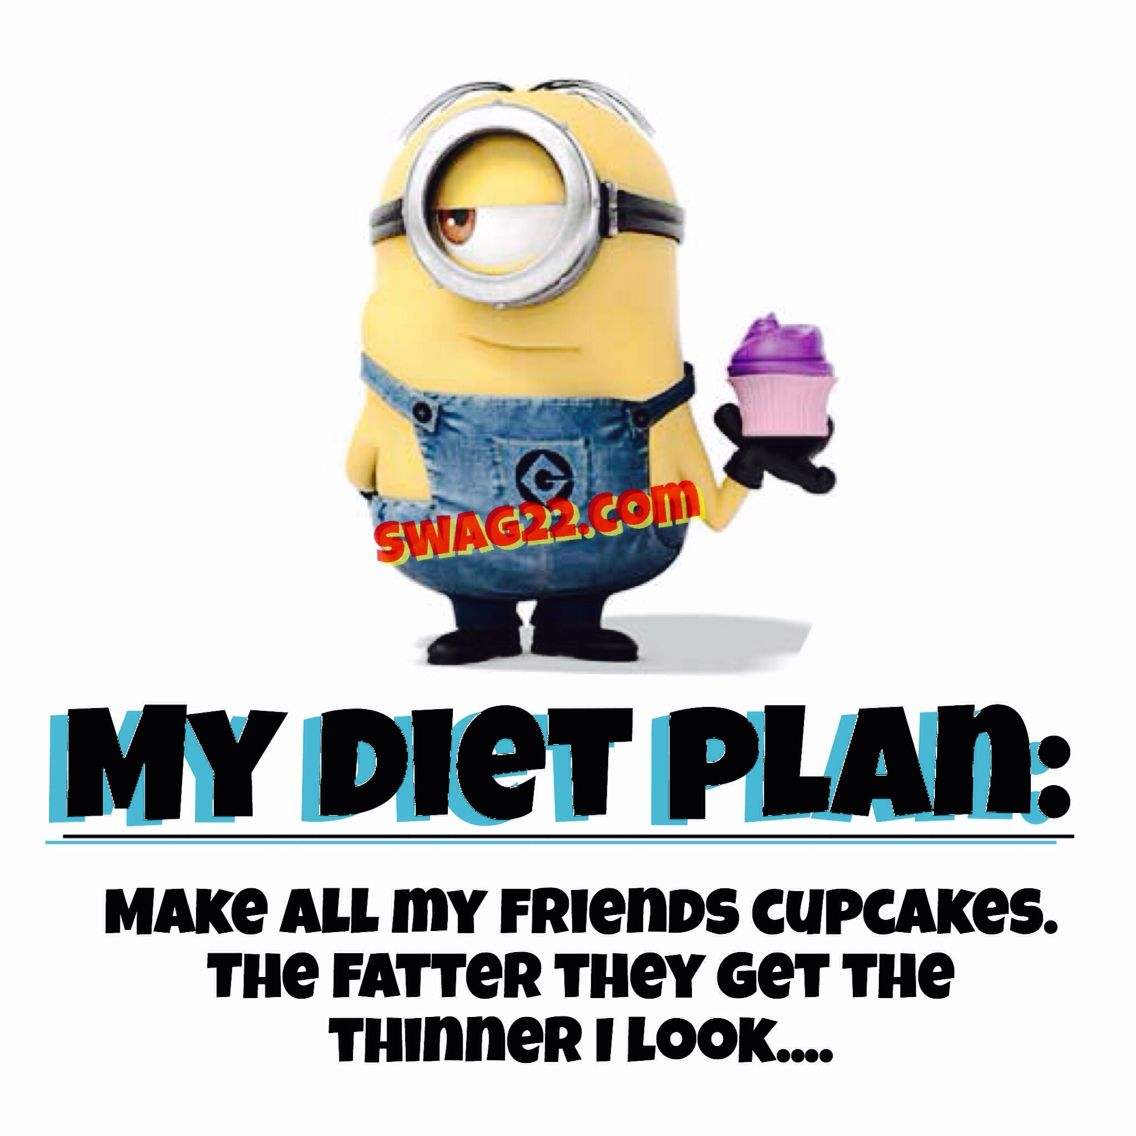 Funny minion picture quotes about diet and dieting habits ...